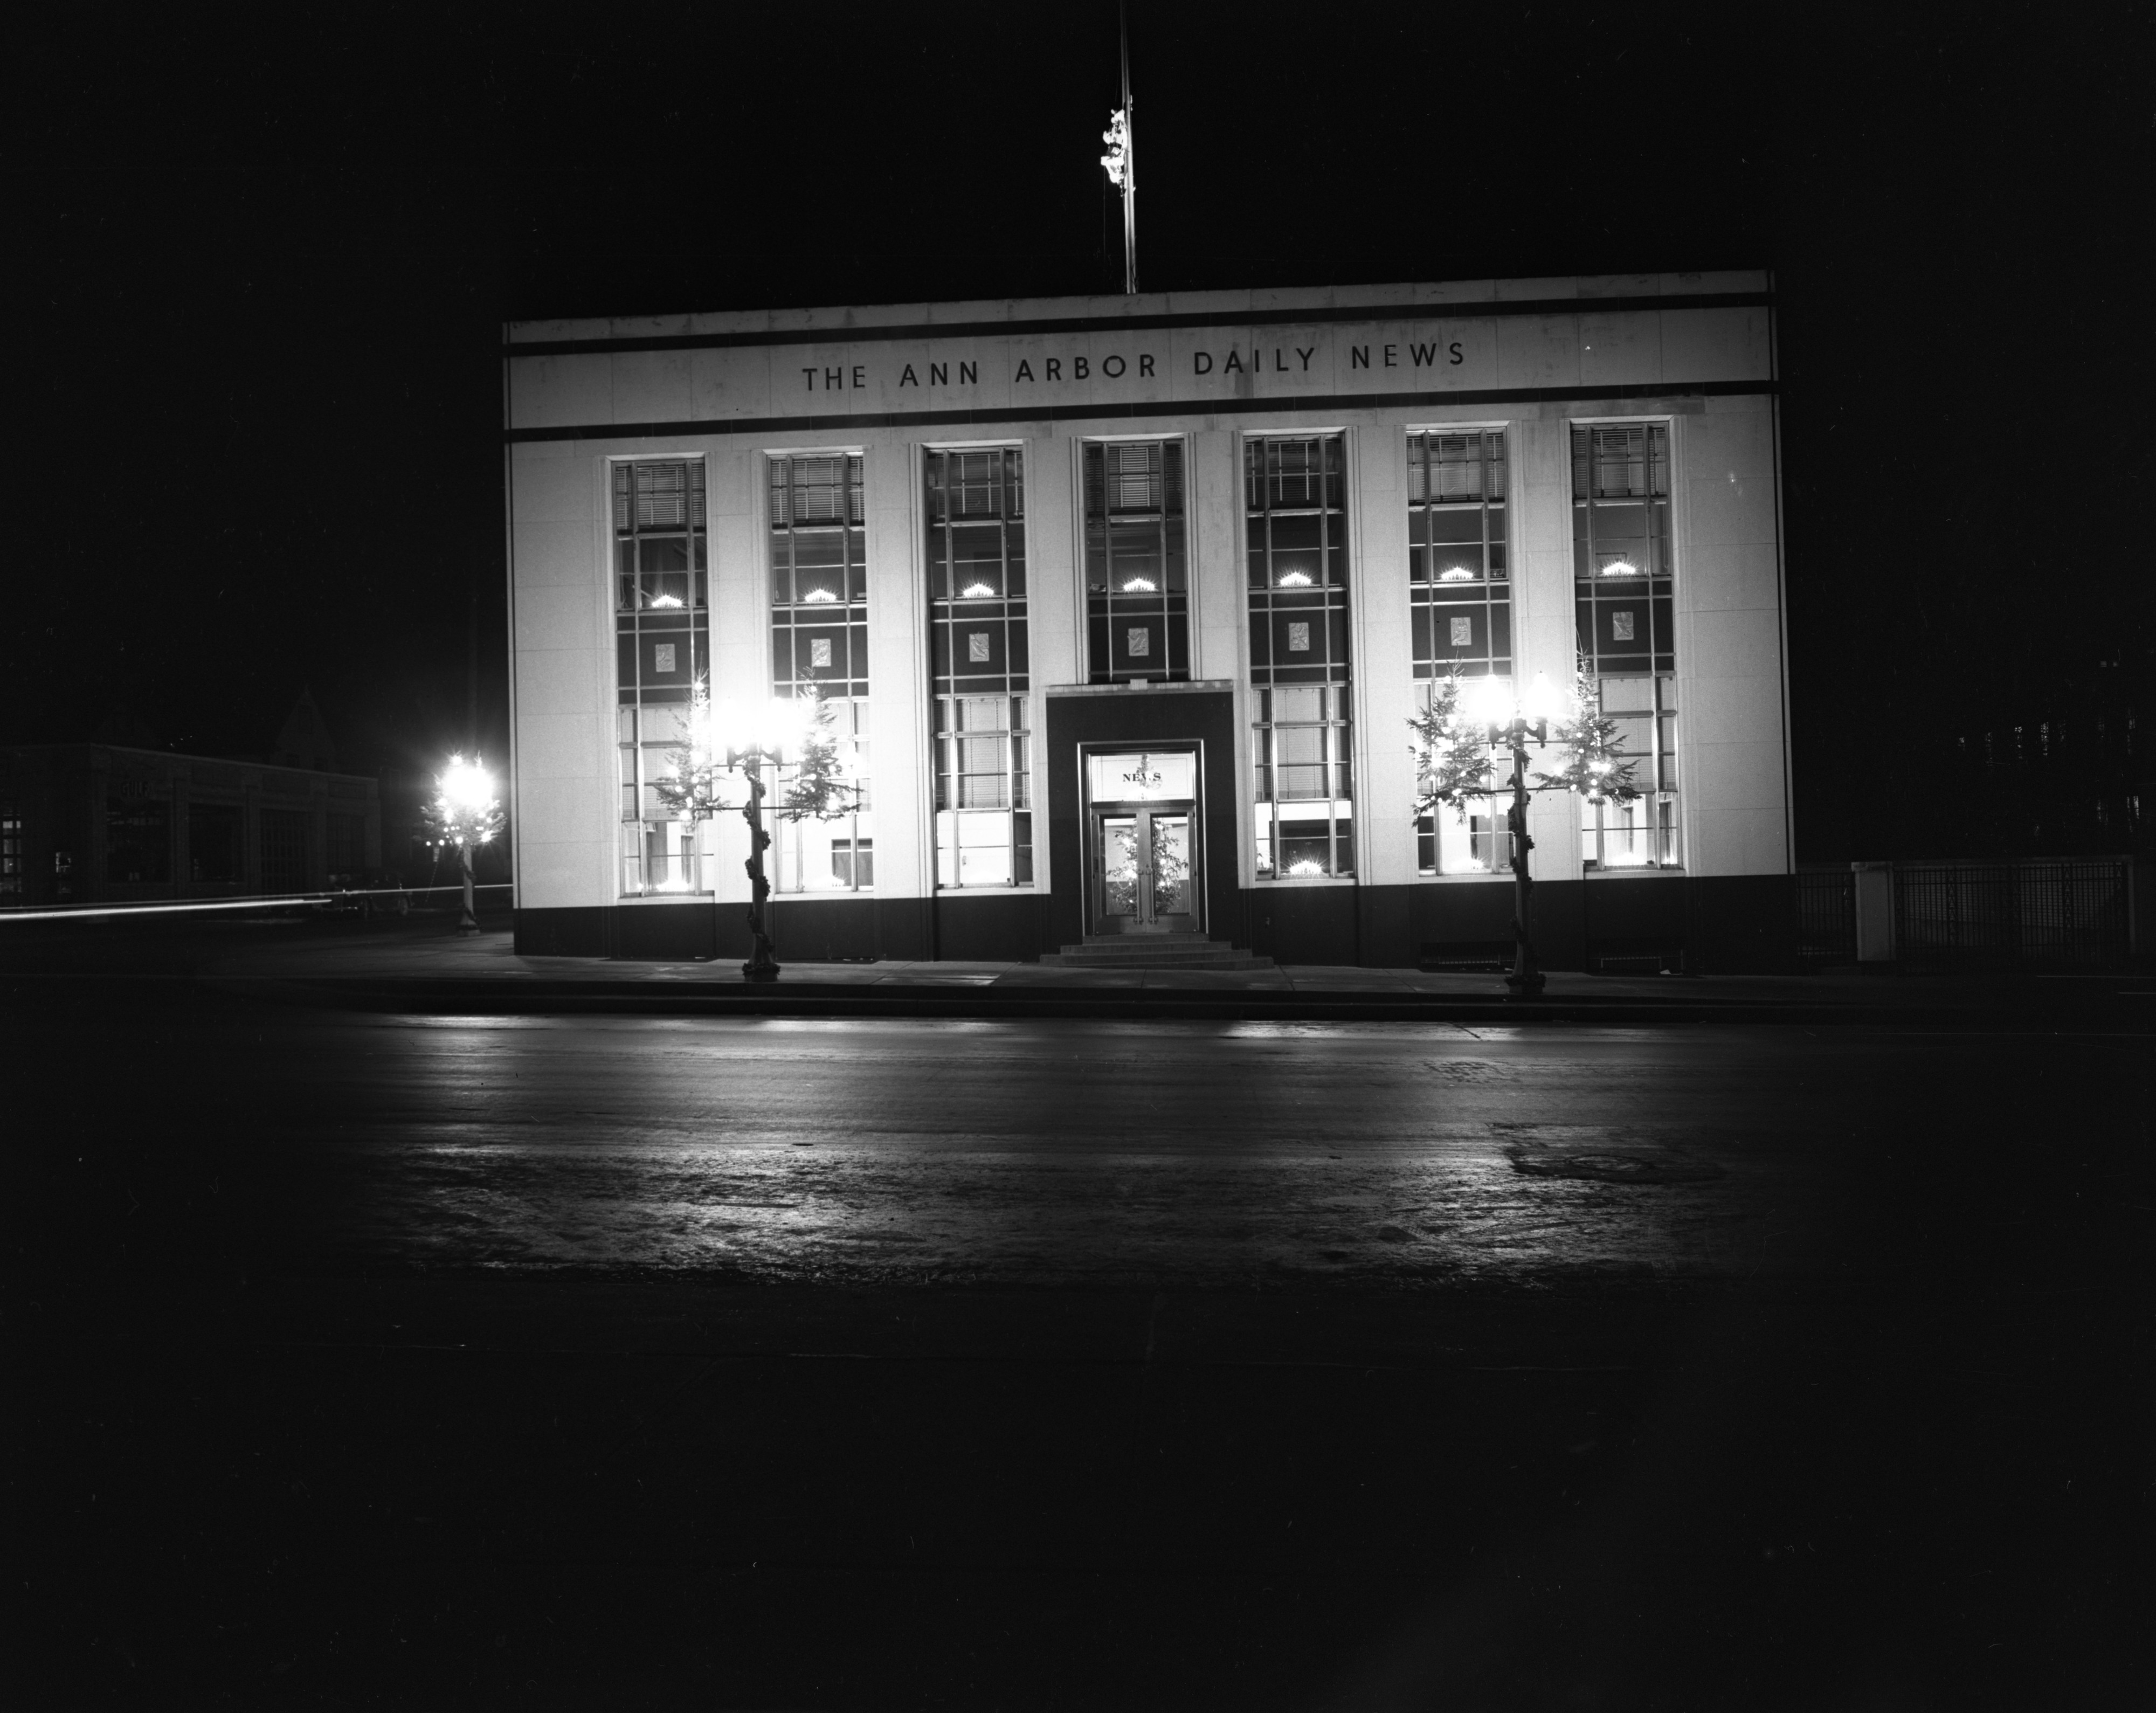 Christmas lights on the Ann Arbor Daily News Building at night, December 1939 image